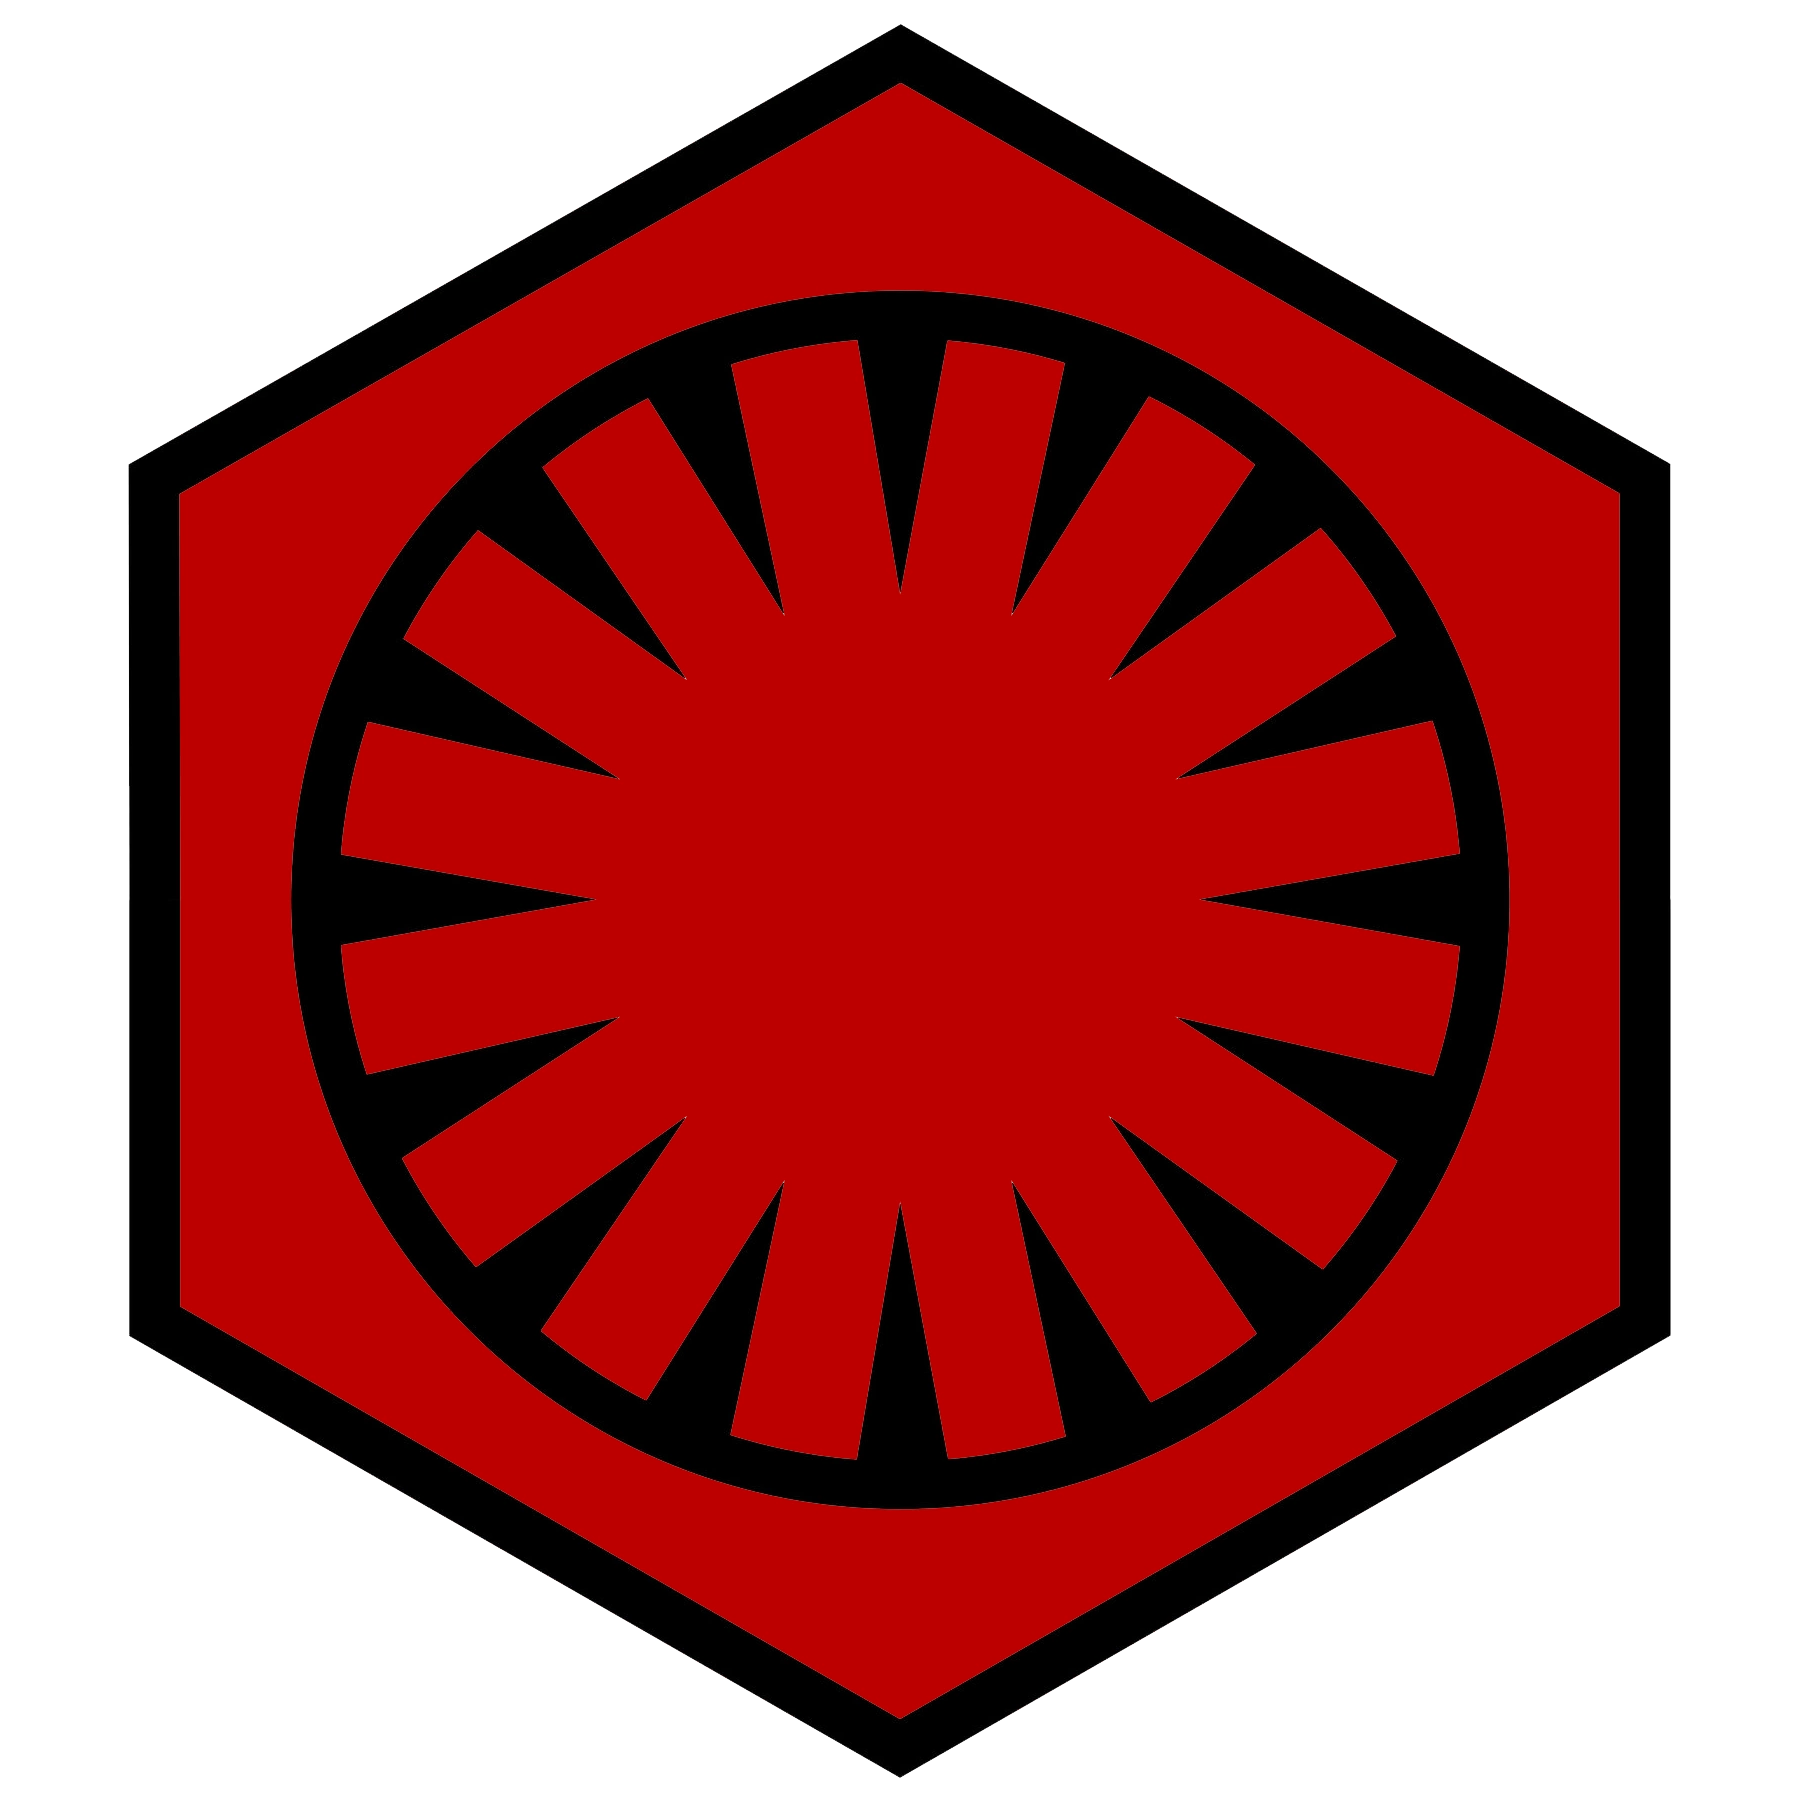 Starwars clipart sith. First order villains wiki